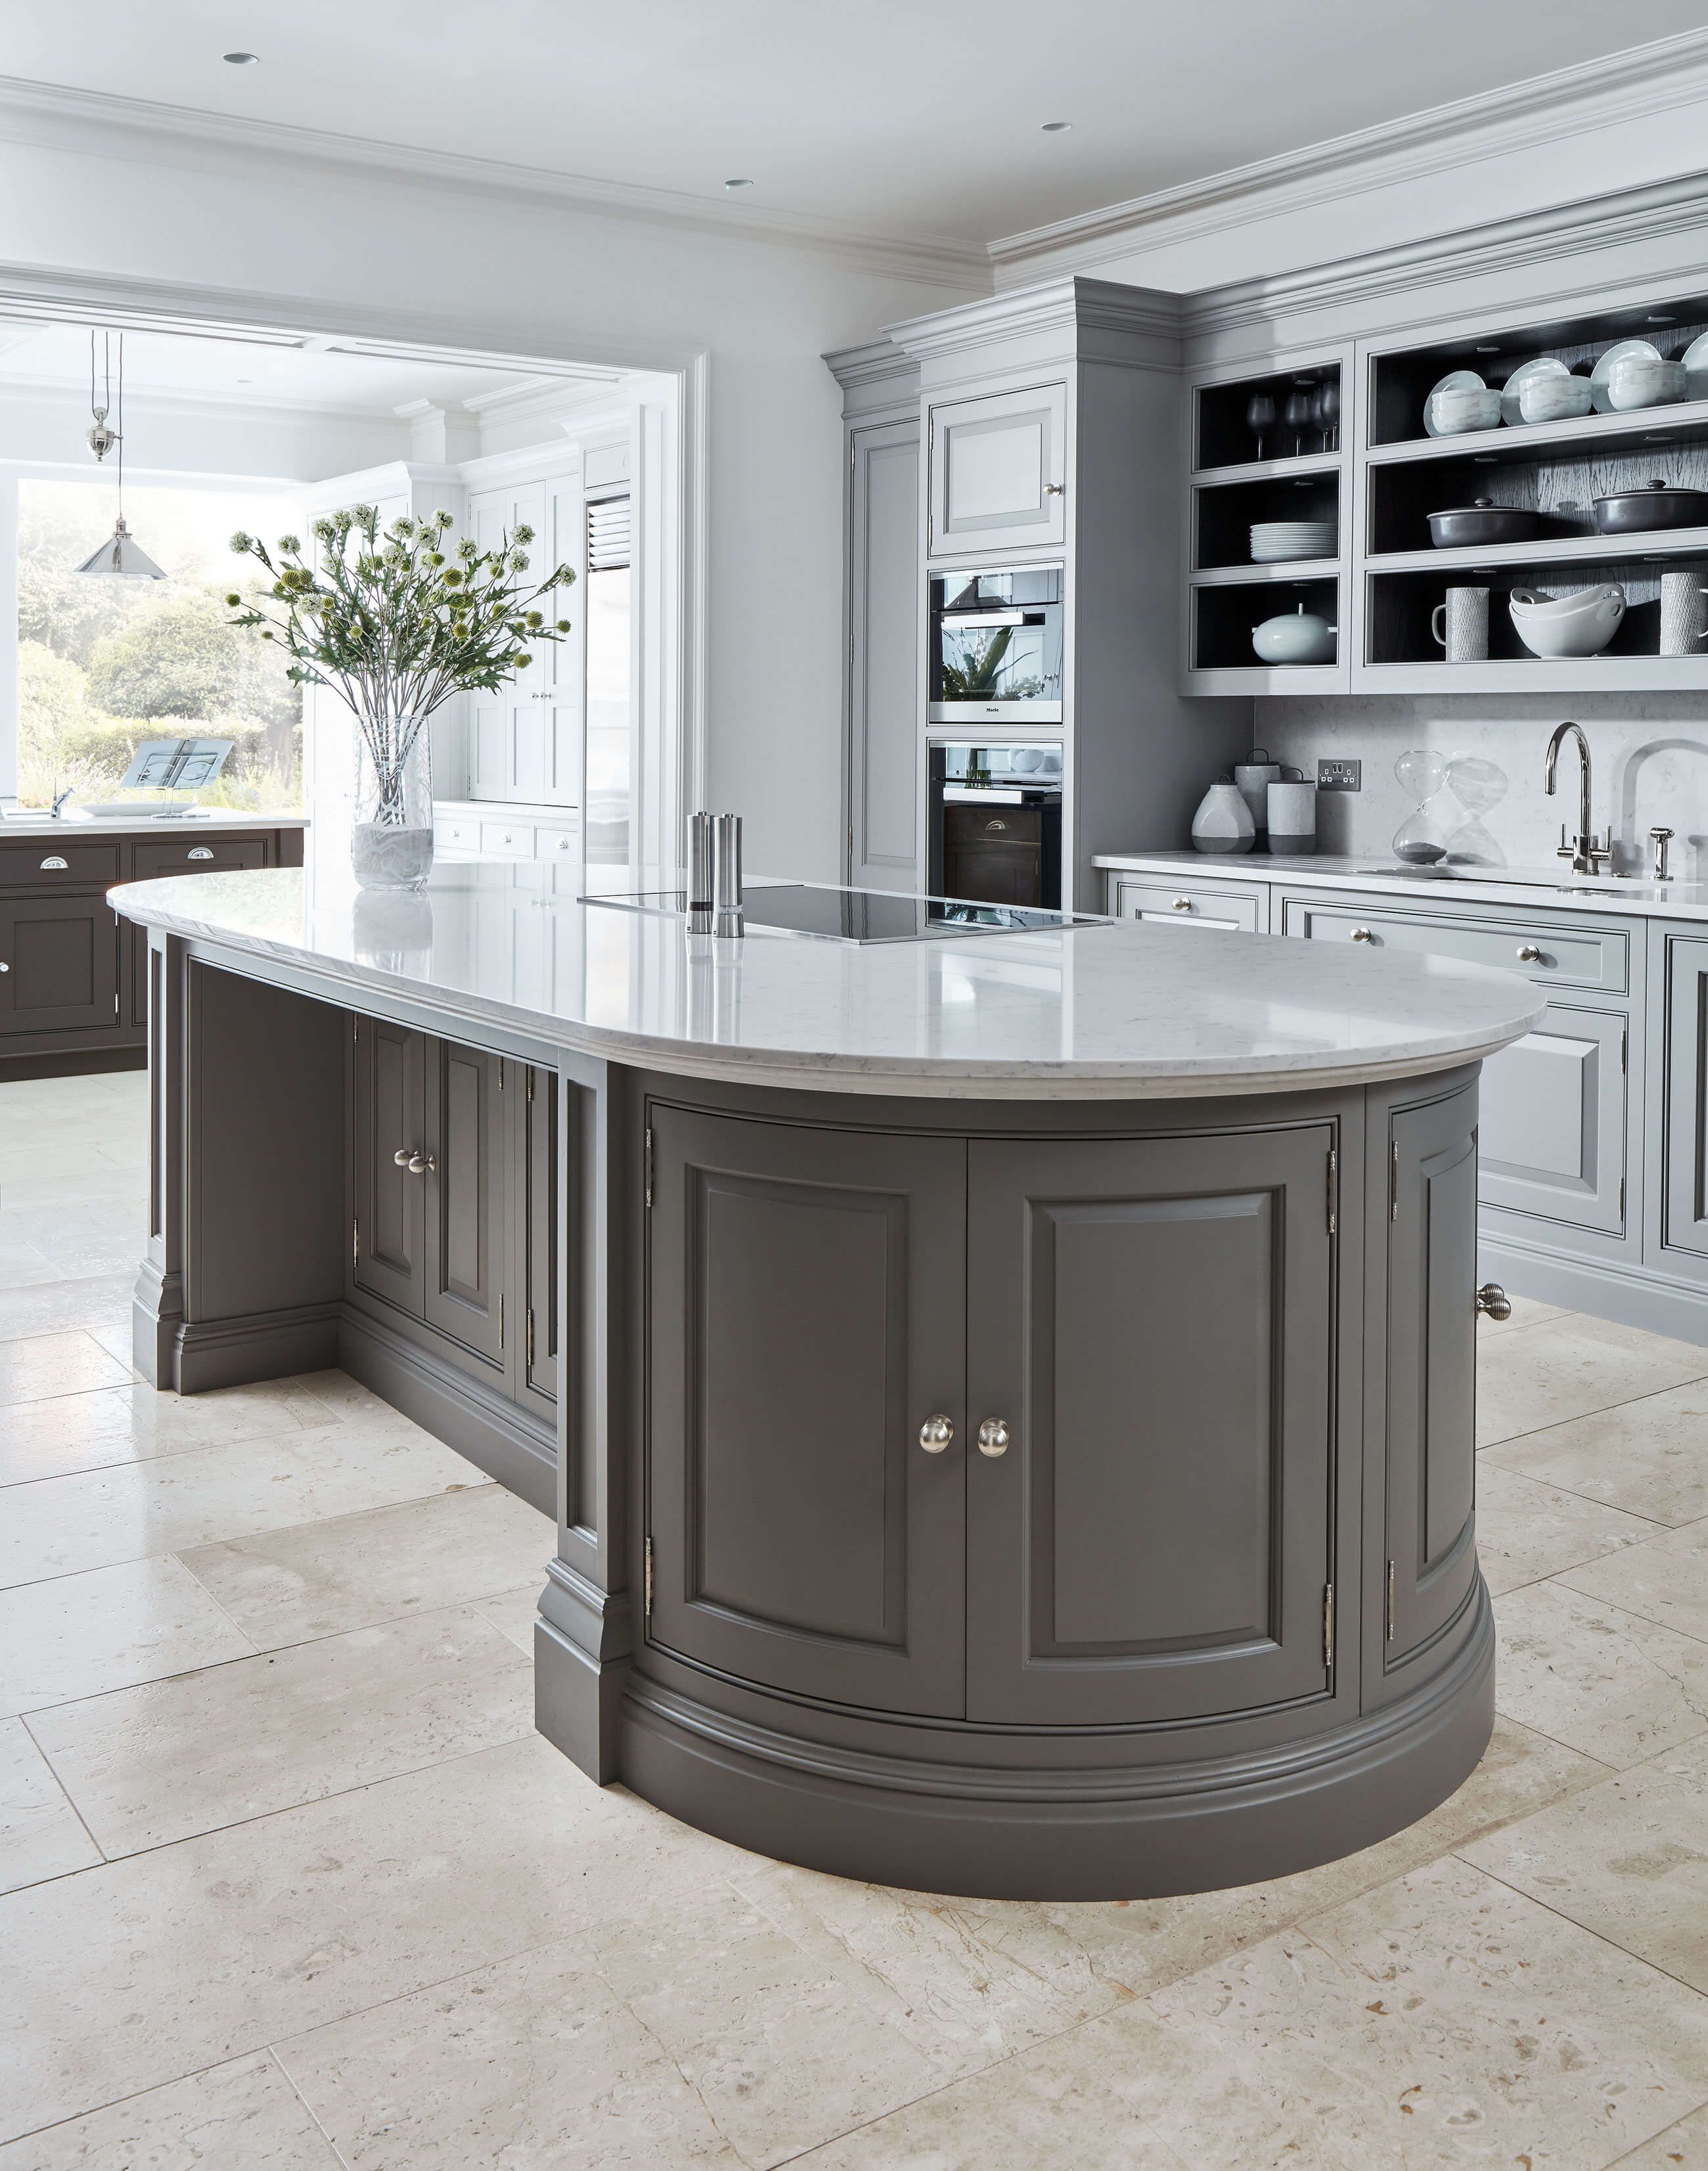 Curved Grey Island in 2020 Home decor kitchen, Luxury